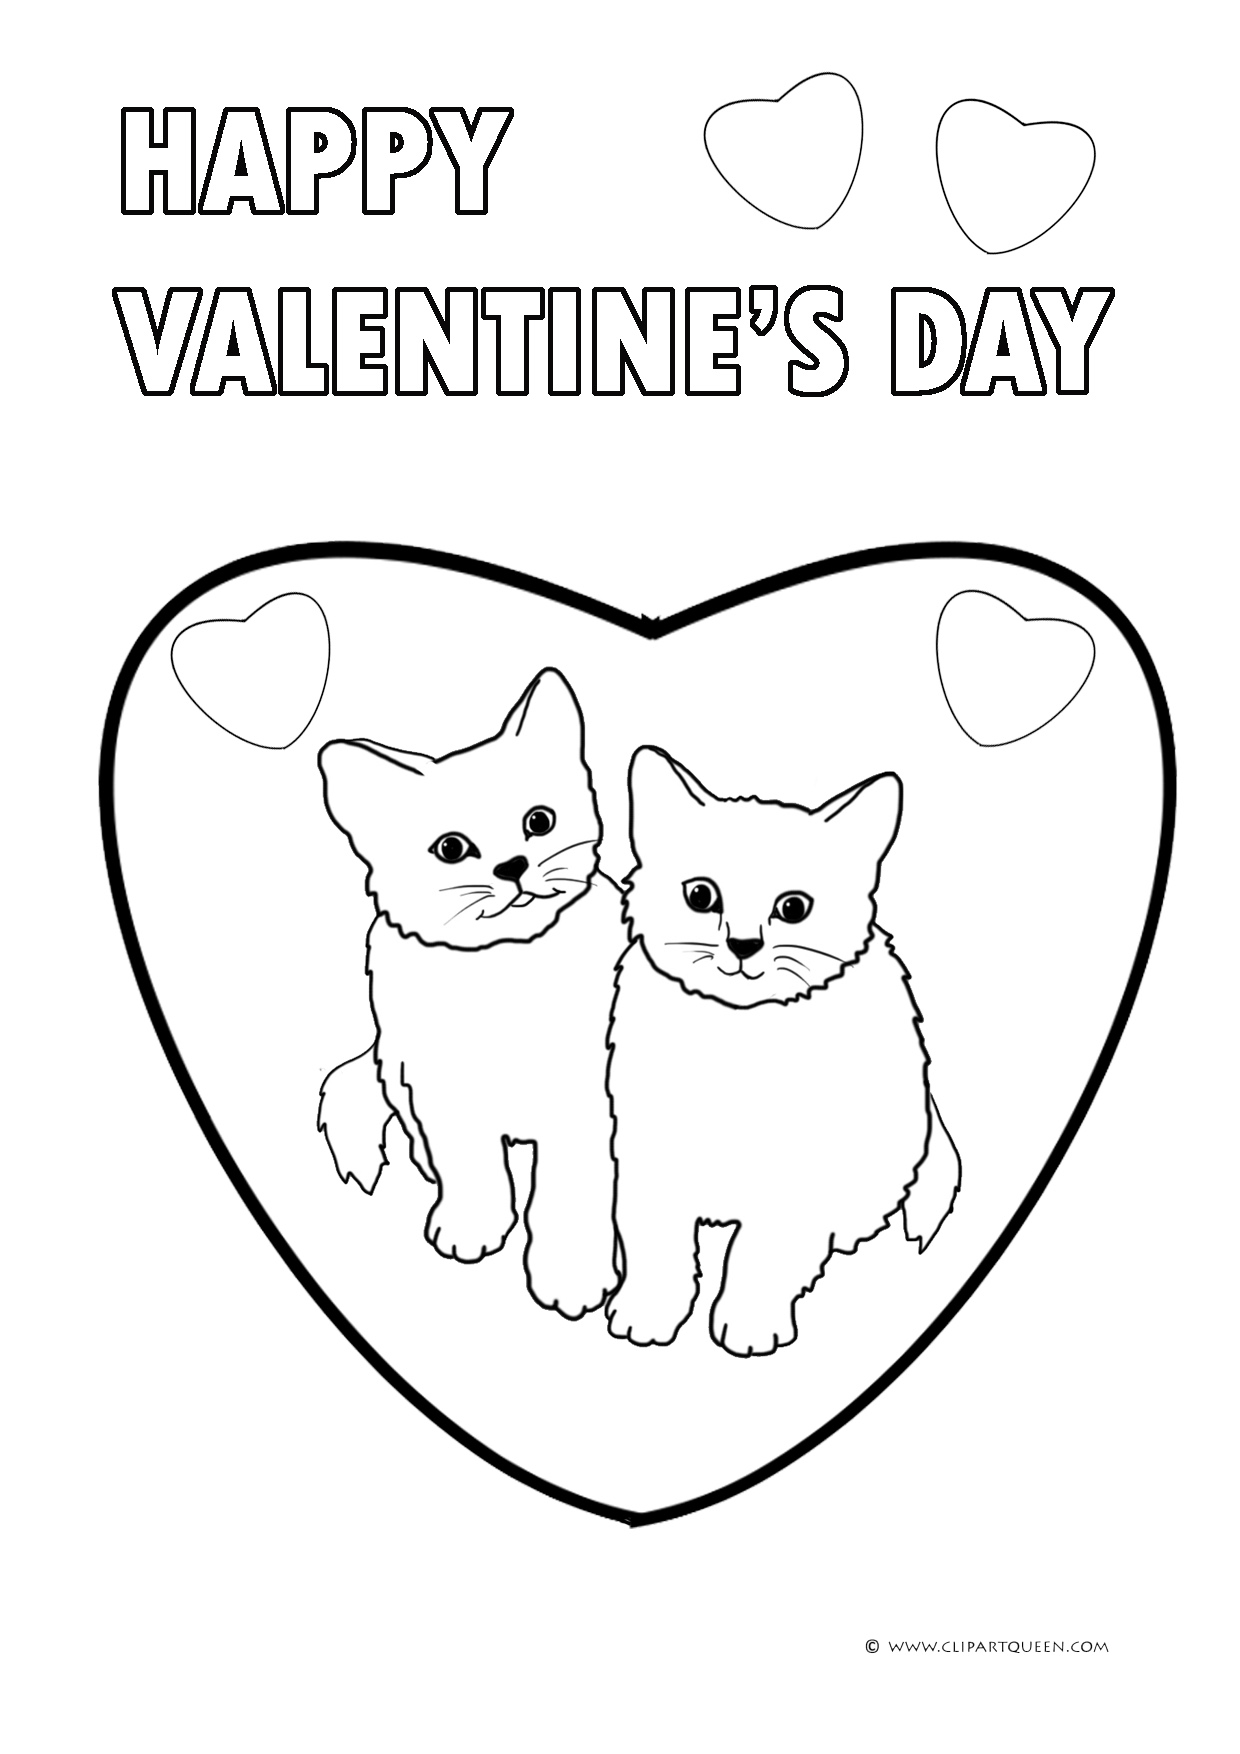 valentines day heart coloring pages four hearts coloring page valentine39s day valentines coloring pages day heart